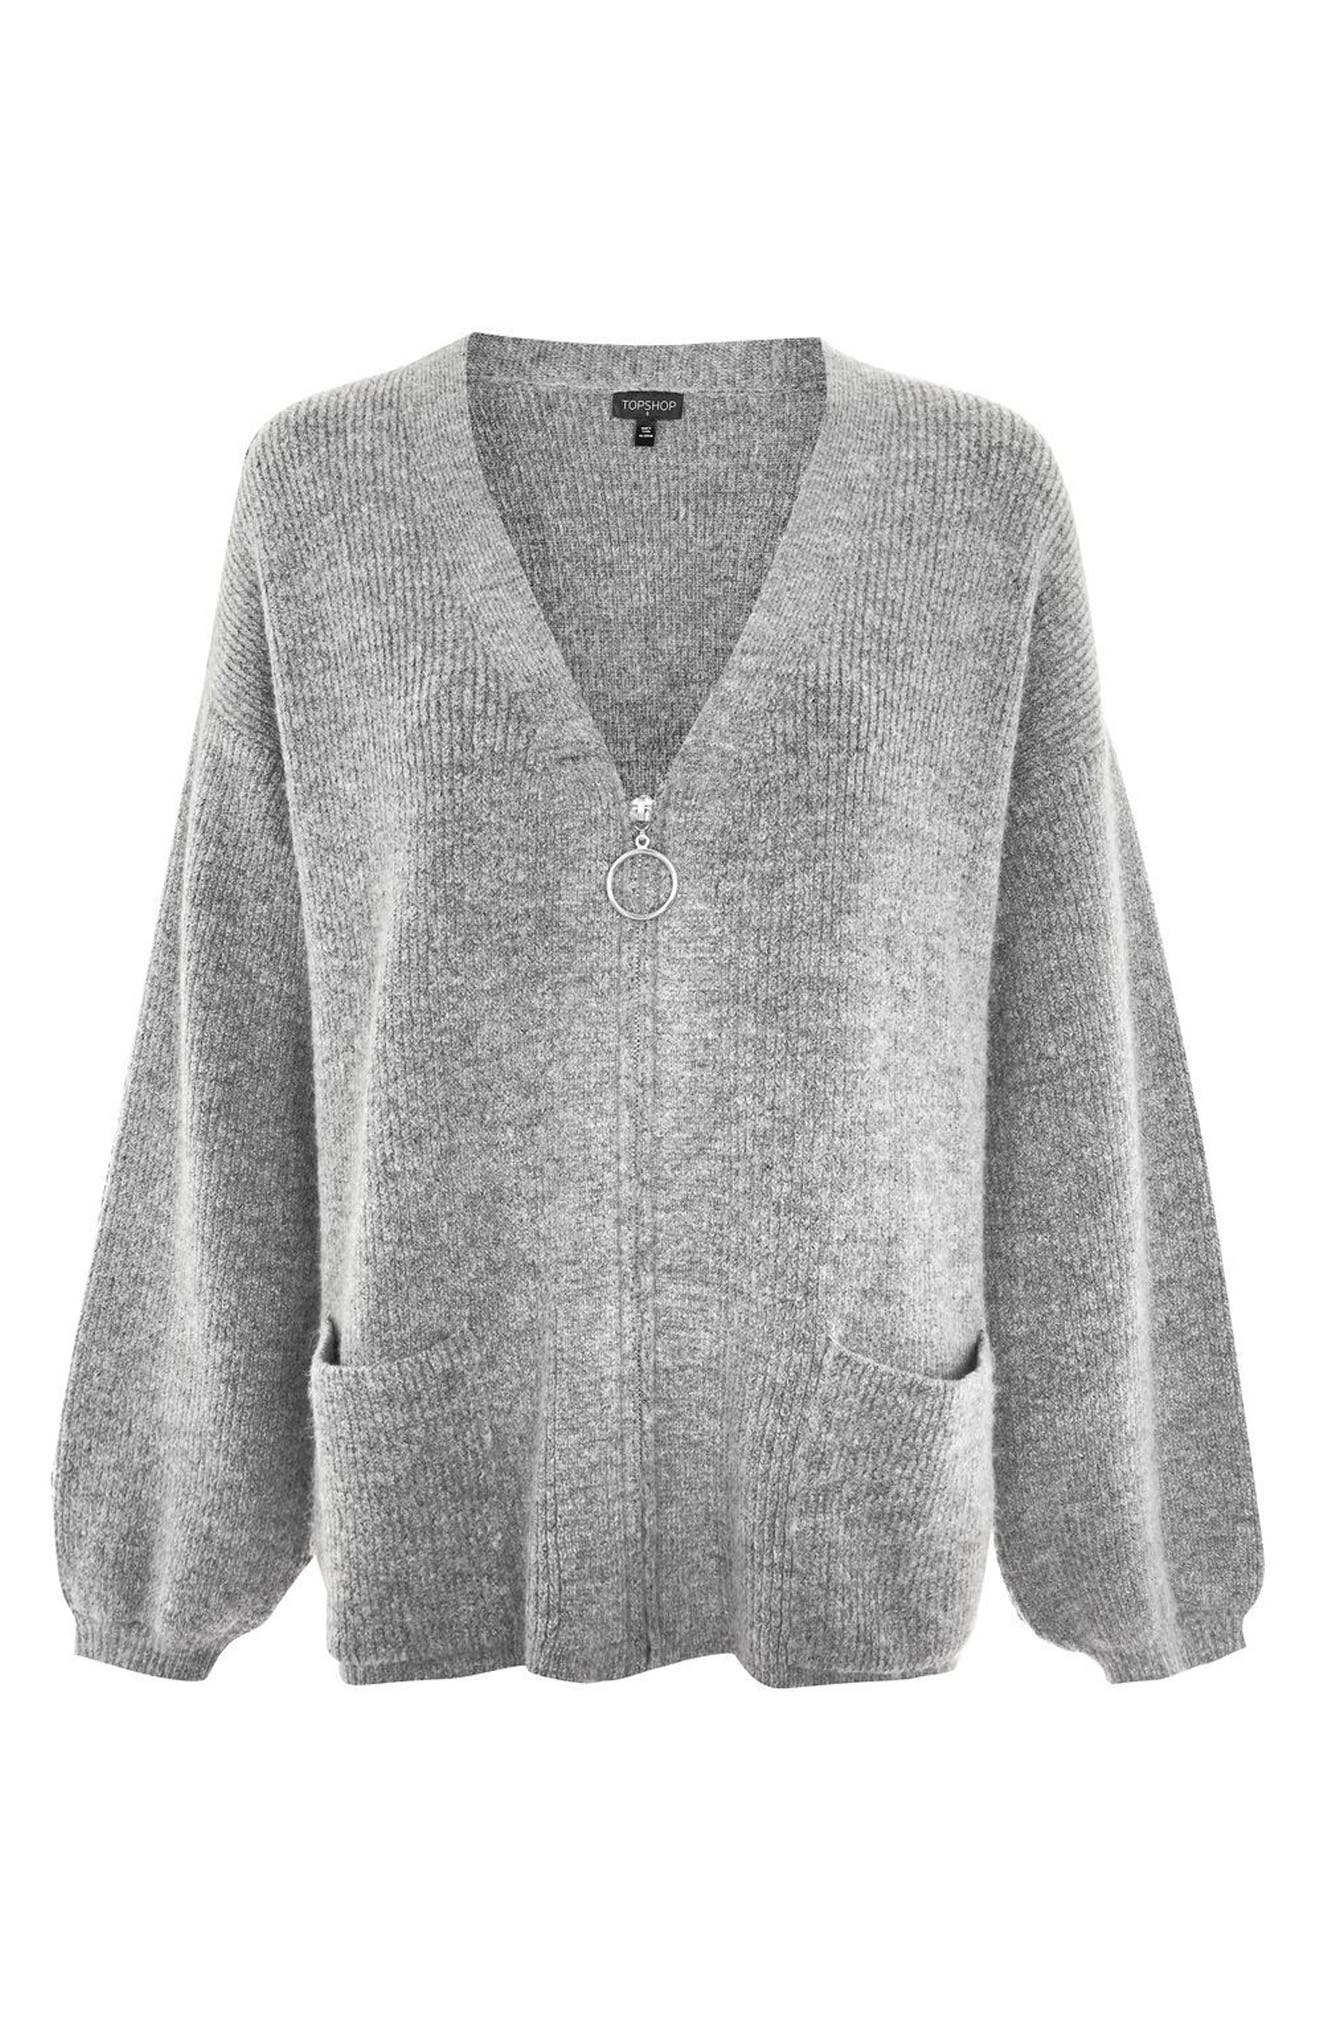 Ring Zip Cardigan,                             Alternate thumbnail 3, color,                             020